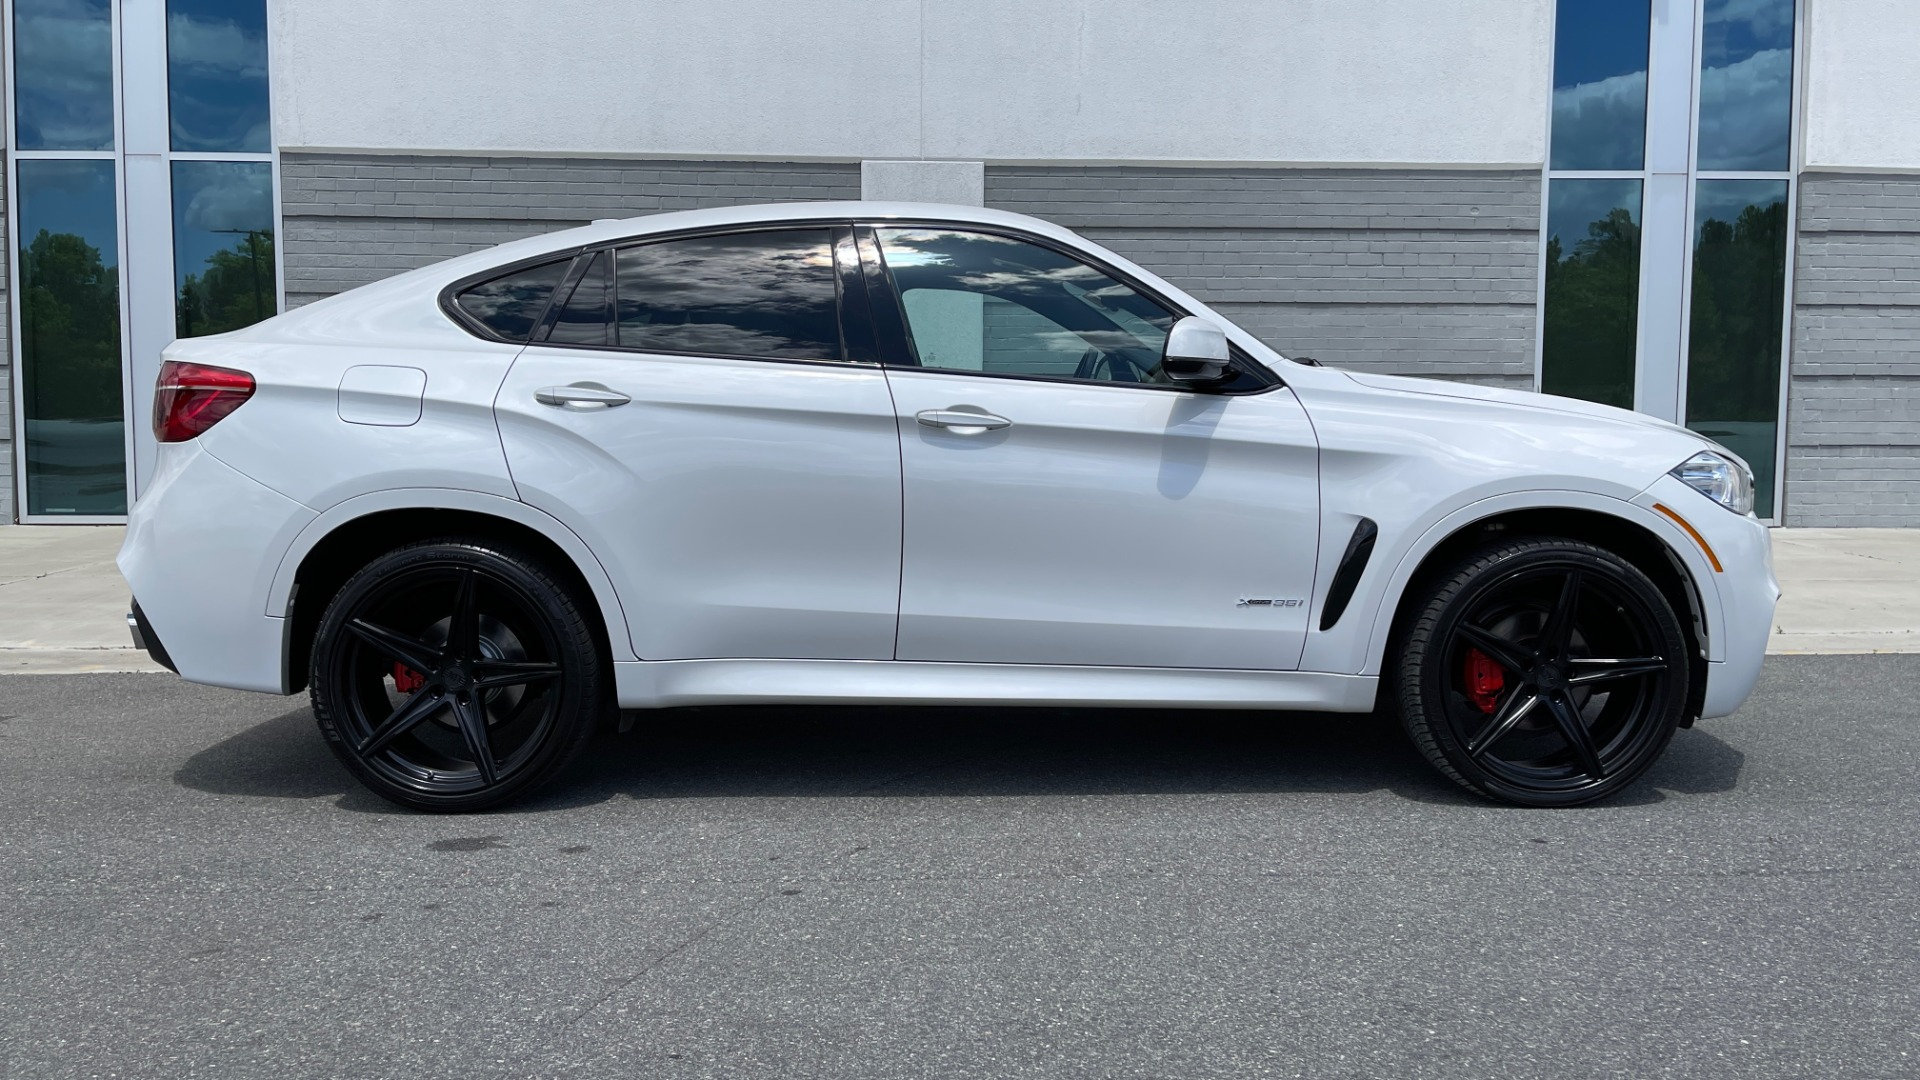 Used 2018 BMW X6 XDRIVE35I M-SPORT / NAV / DRVR ASST PLUS / ADAPT M-SUSP / REARVIEW for sale Sold at Formula Imports in Charlotte NC 28227 3